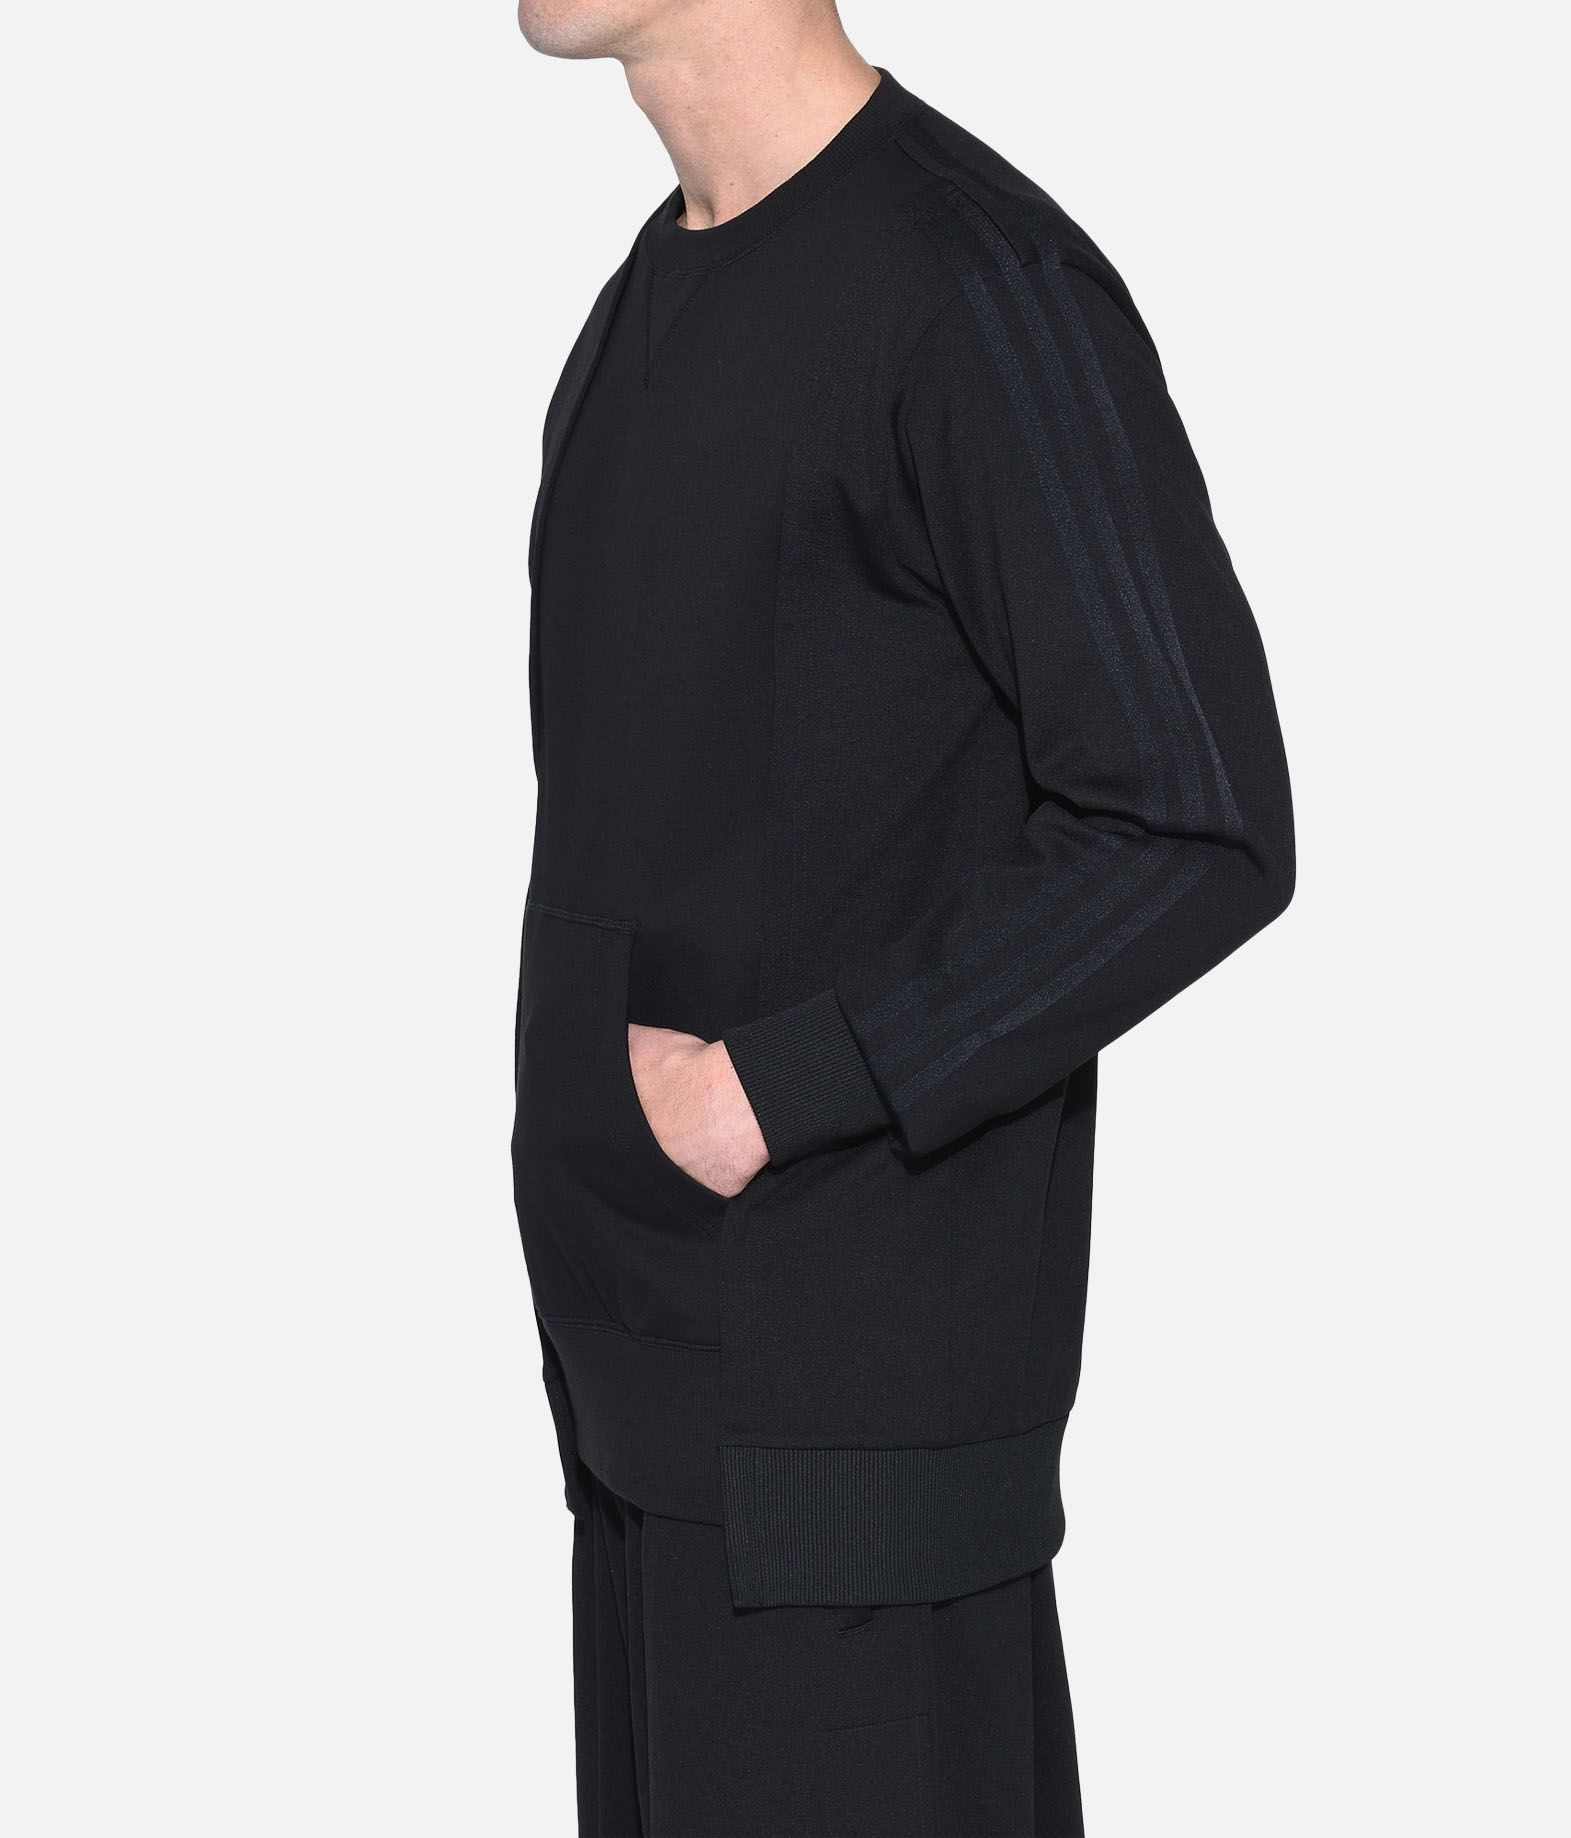 Y-3 Y-3 Patchwork Sweater Sweatshirt Man e